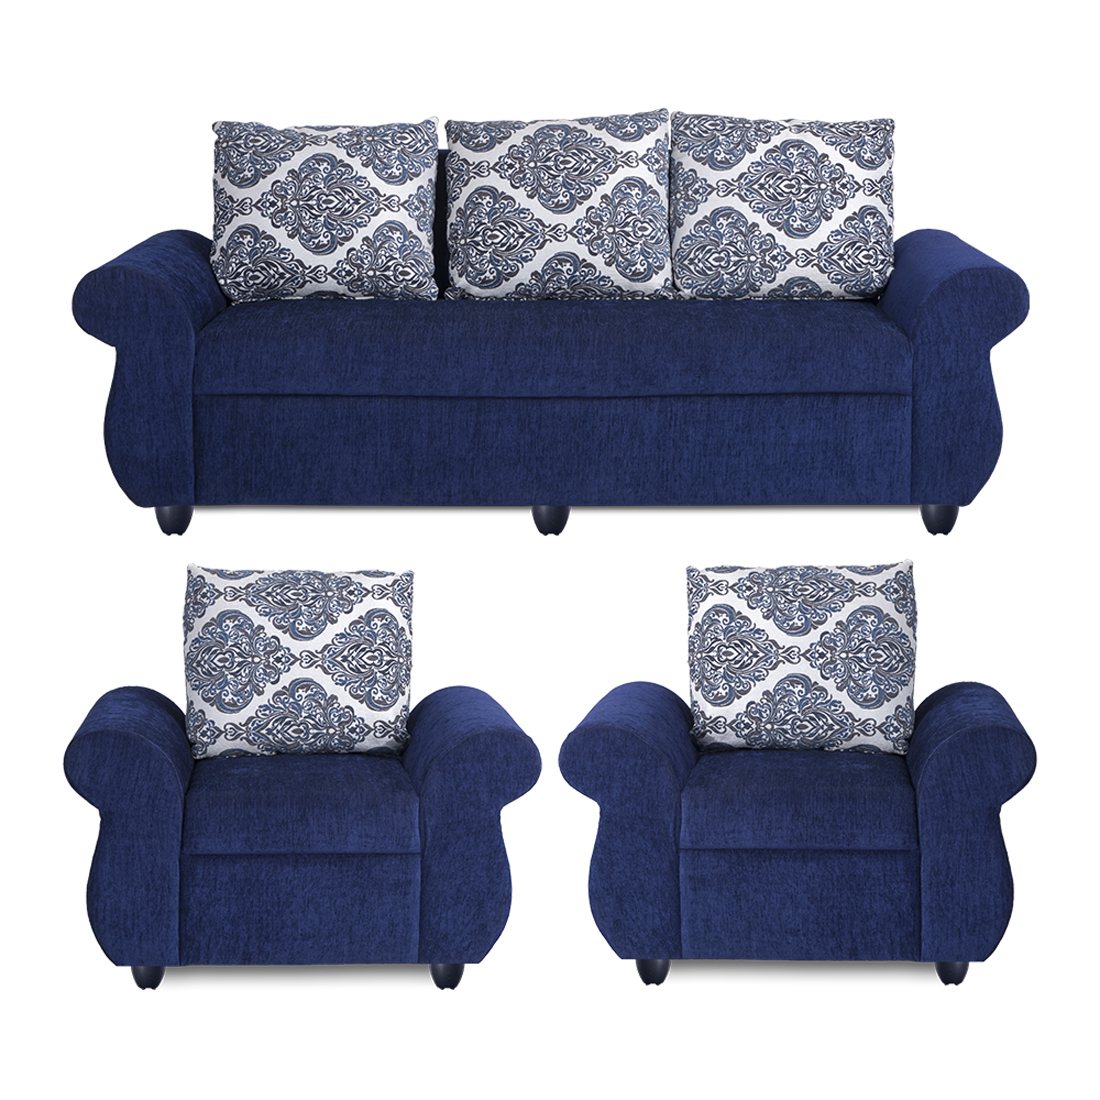 Wondrous Bharat Lifestyle Alisa Fabric 3 1 1 Blue Sofa Set Cjindustries Chair Design For Home Cjindustriesco